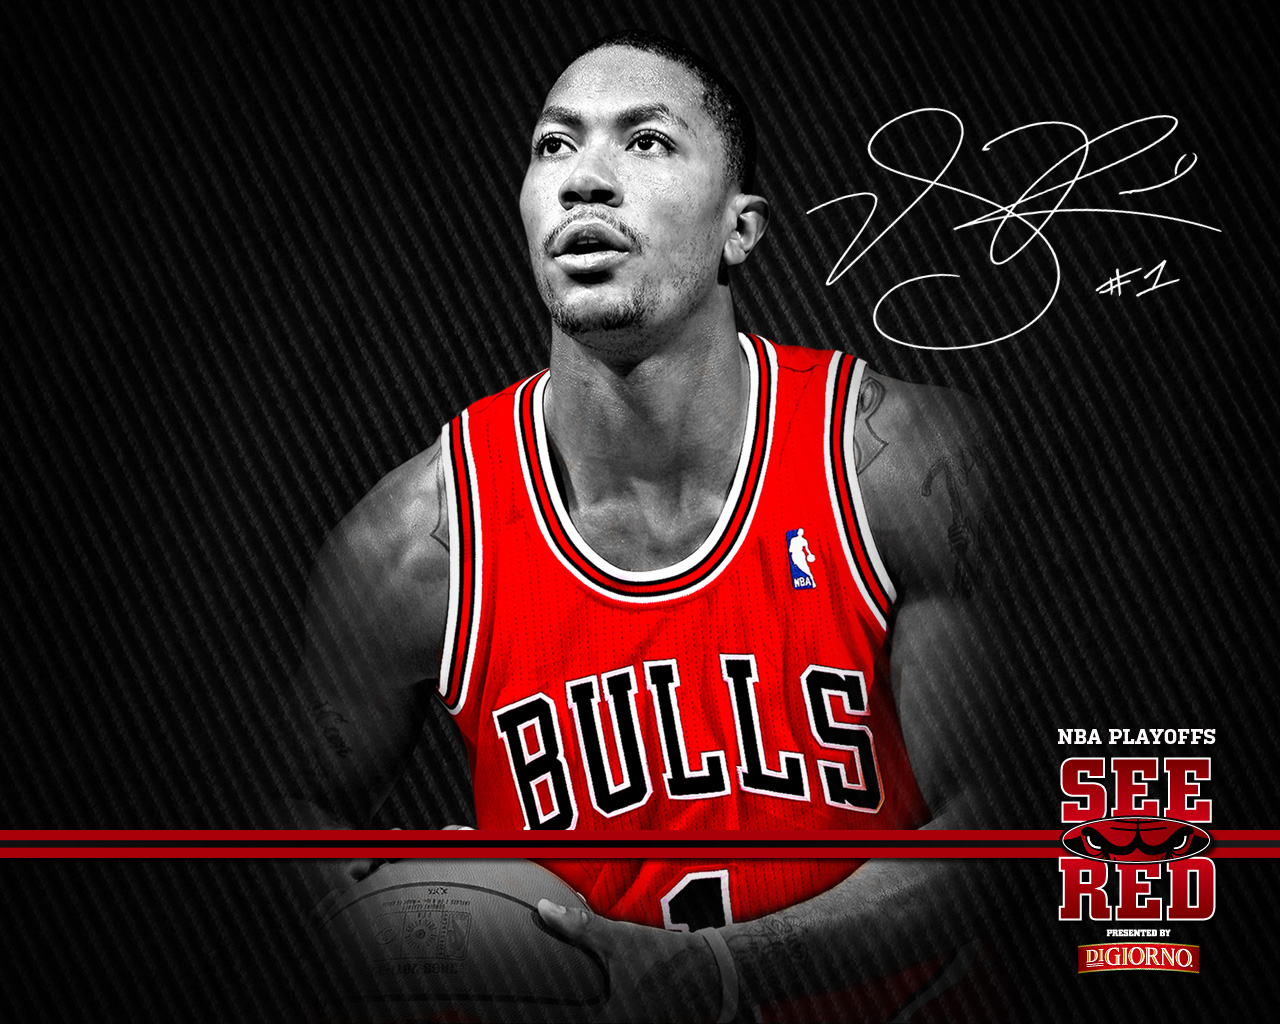 derrick rose wallpaper iphone - photo #33